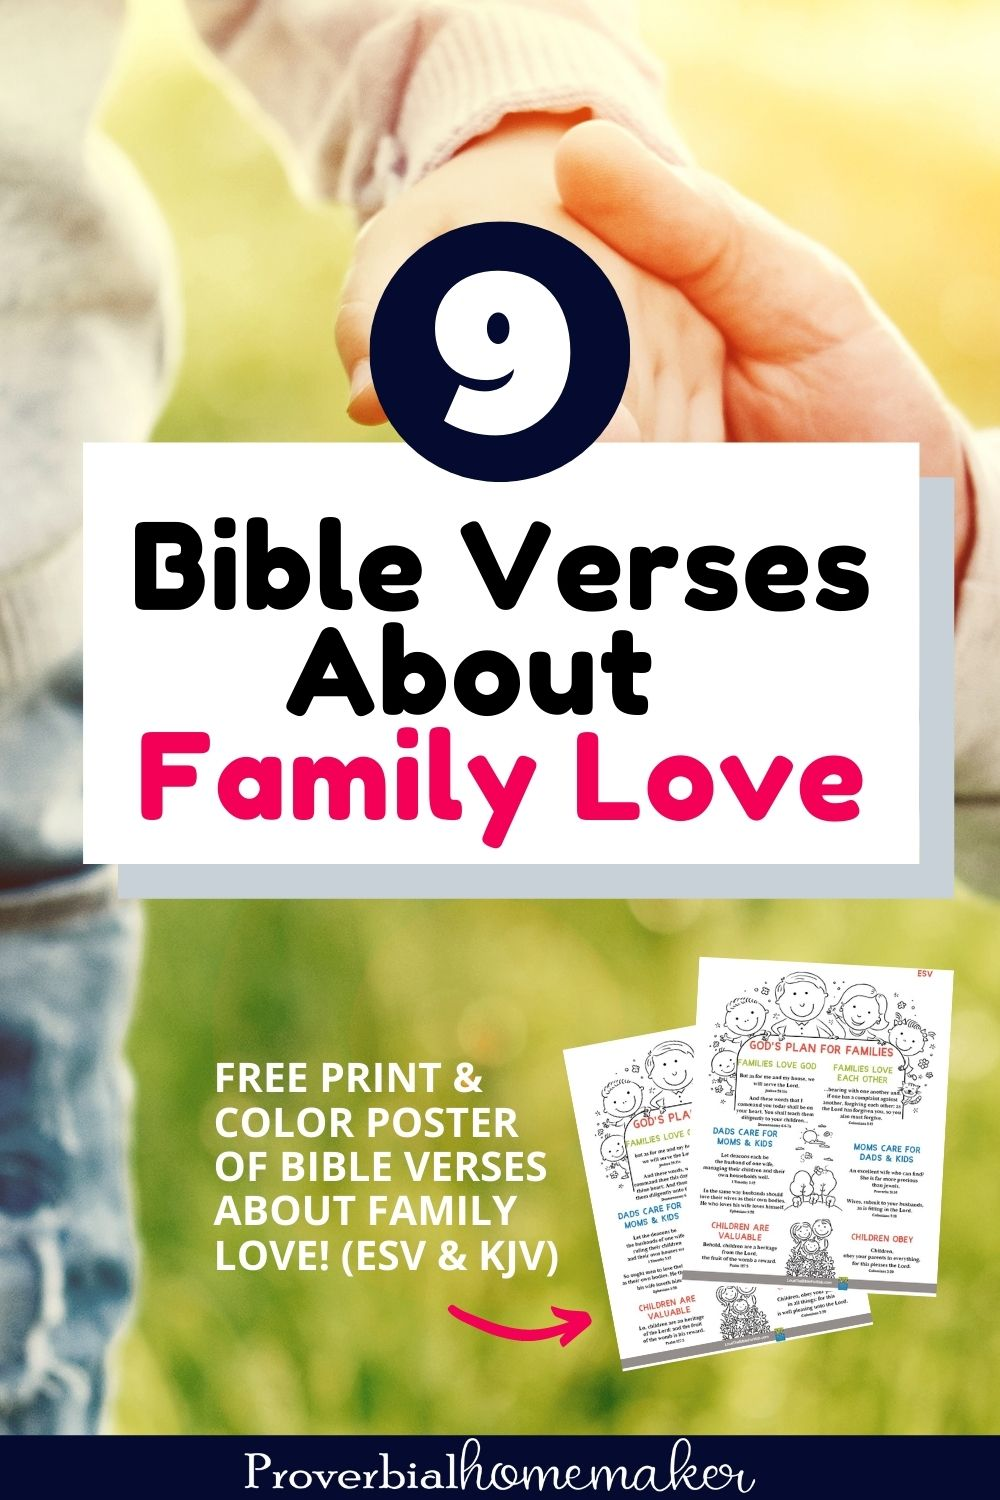 Bible verses about family love with a free coloring poster of Scripture verses in KJV and ESV